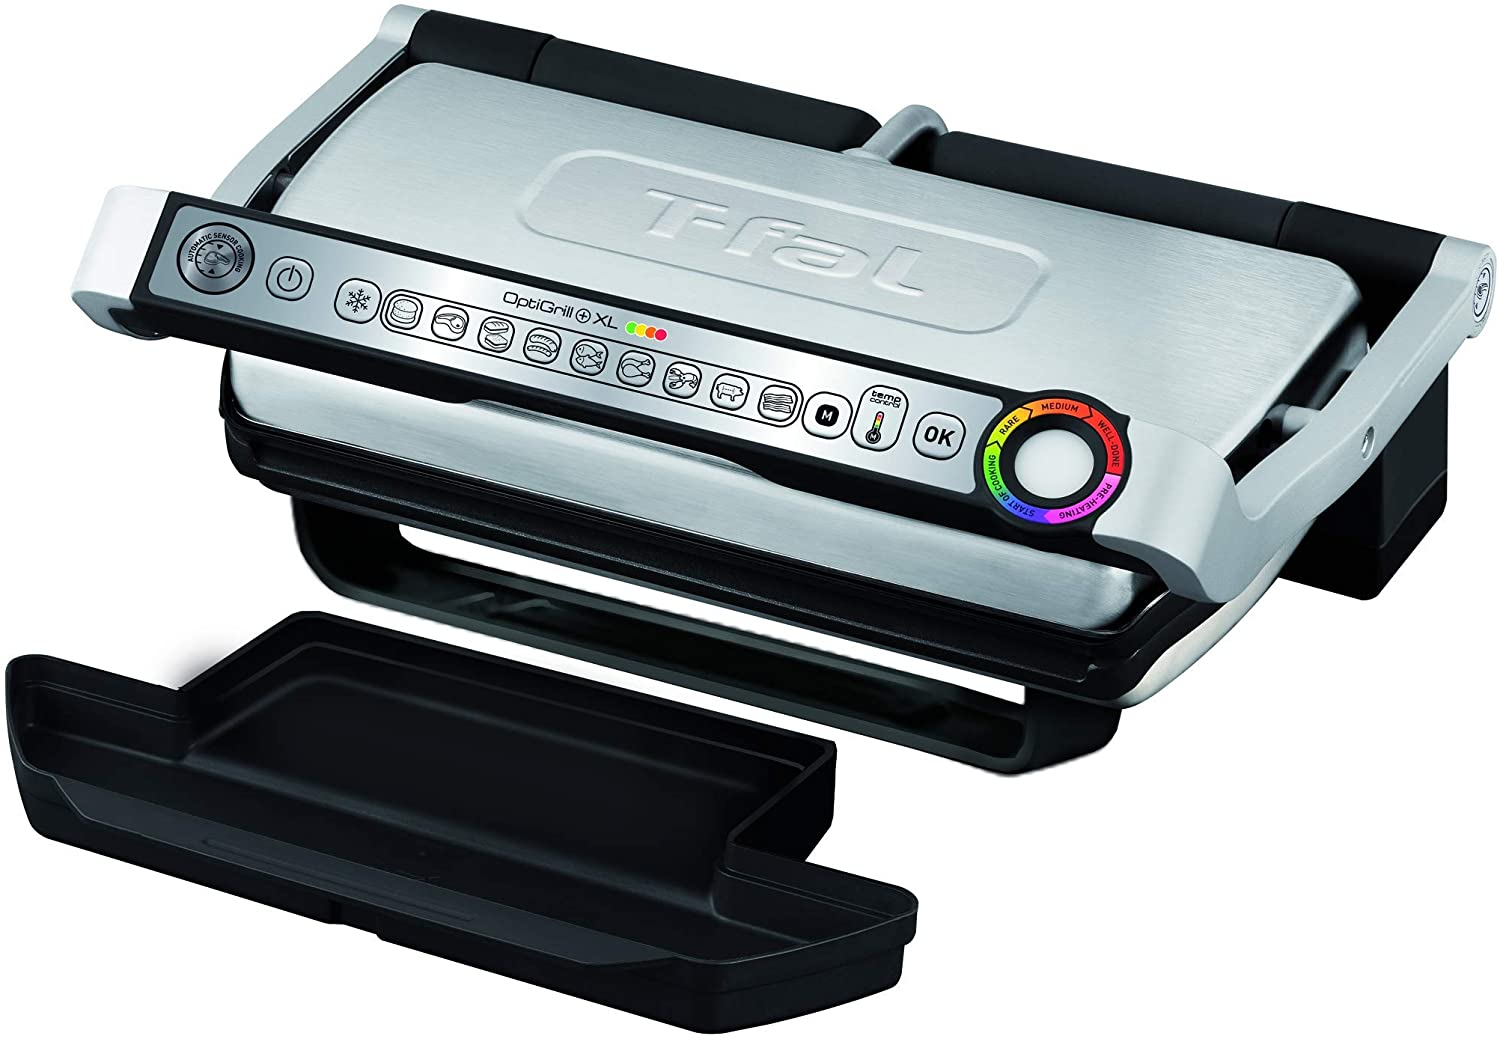 T-fal GC722D53 OptiGrill XL Large Indoor 1800W Electric Grill (Stainless Steel, Silver)